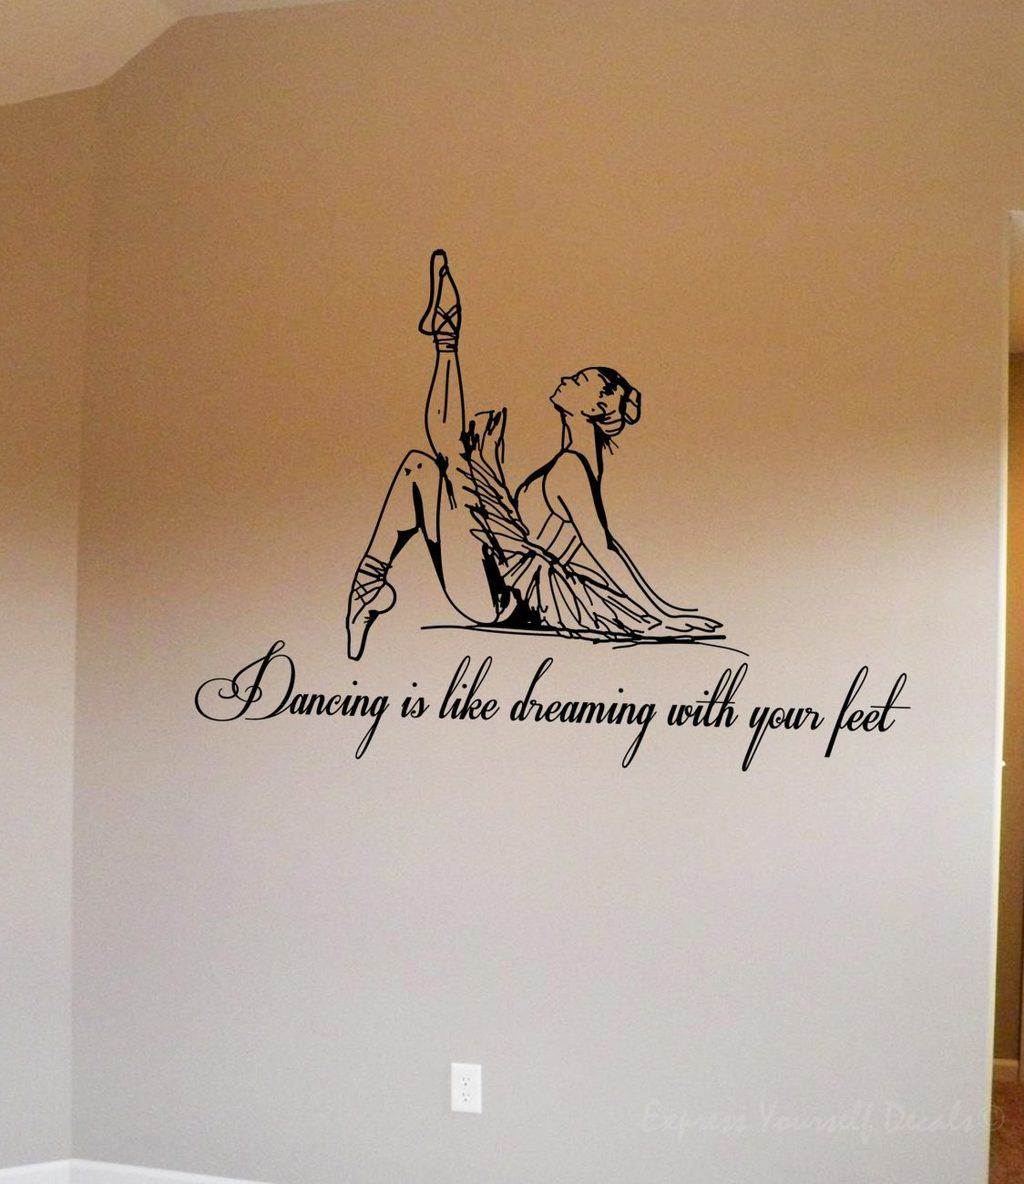 Dancing is like dreaming wall art decal